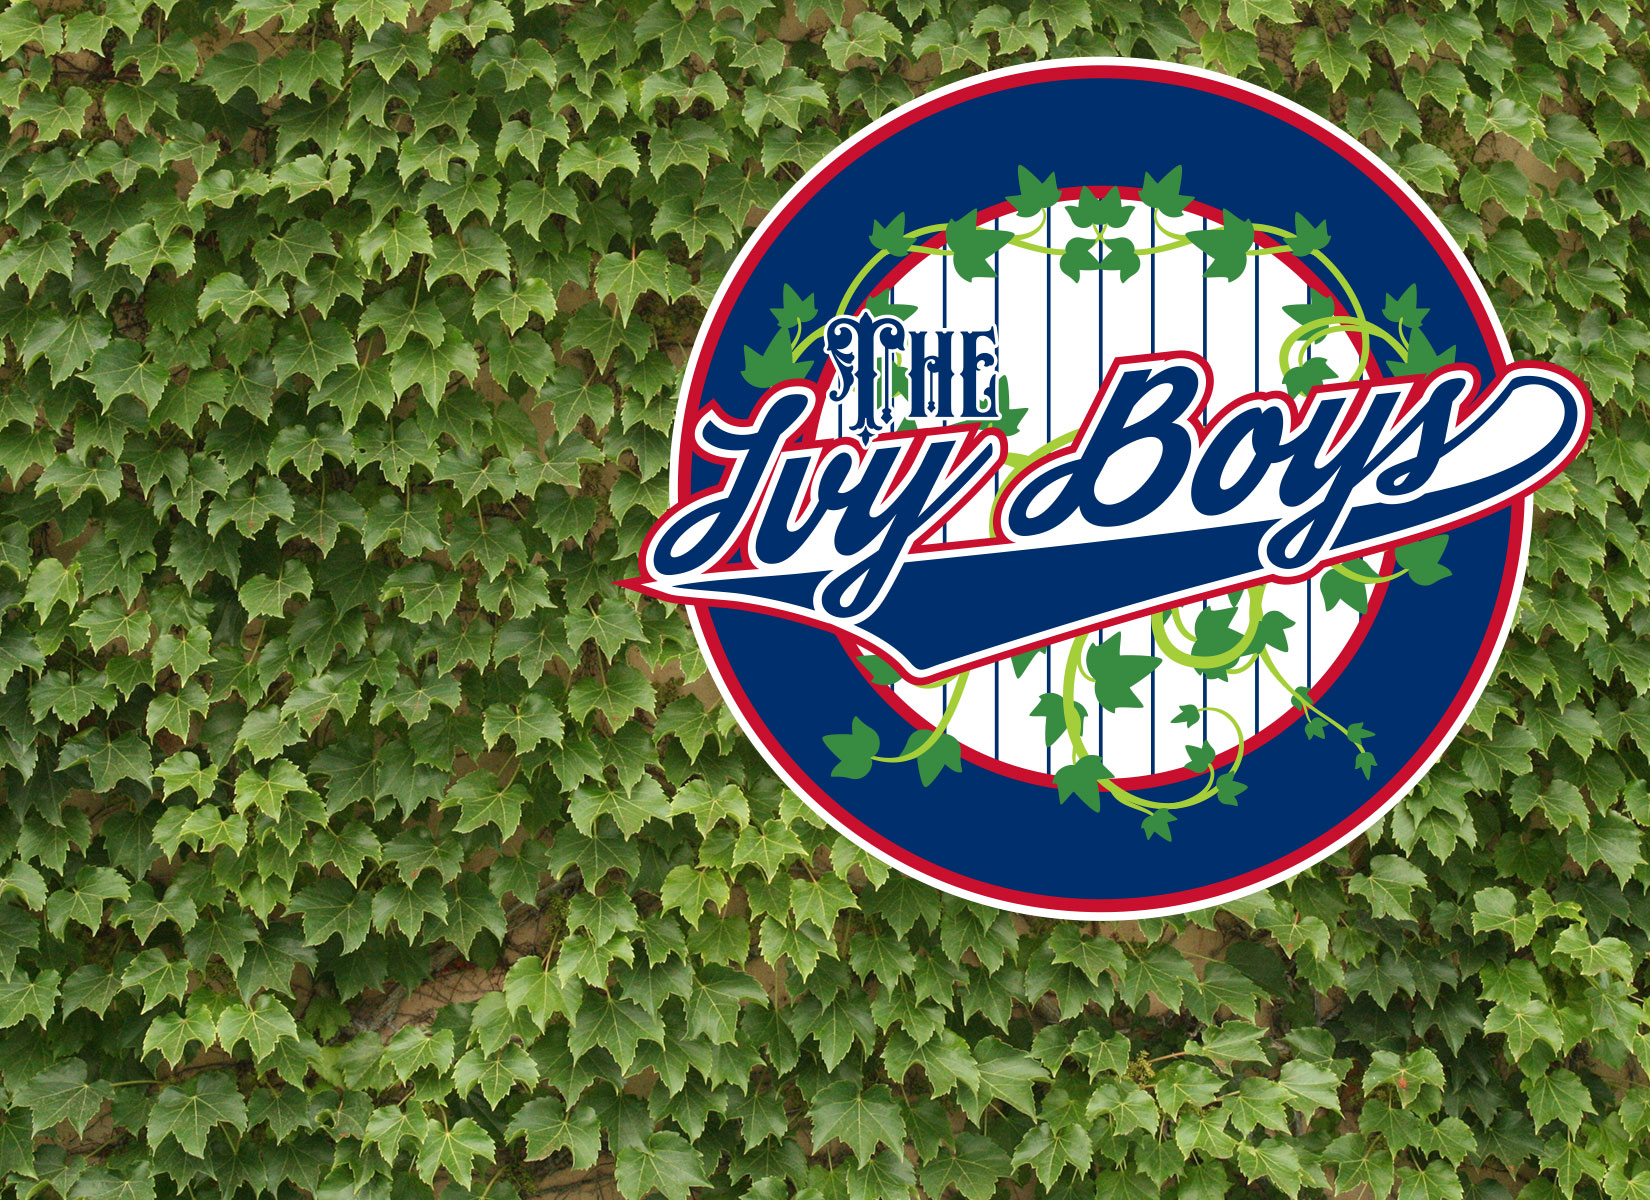 The Ivy Boys